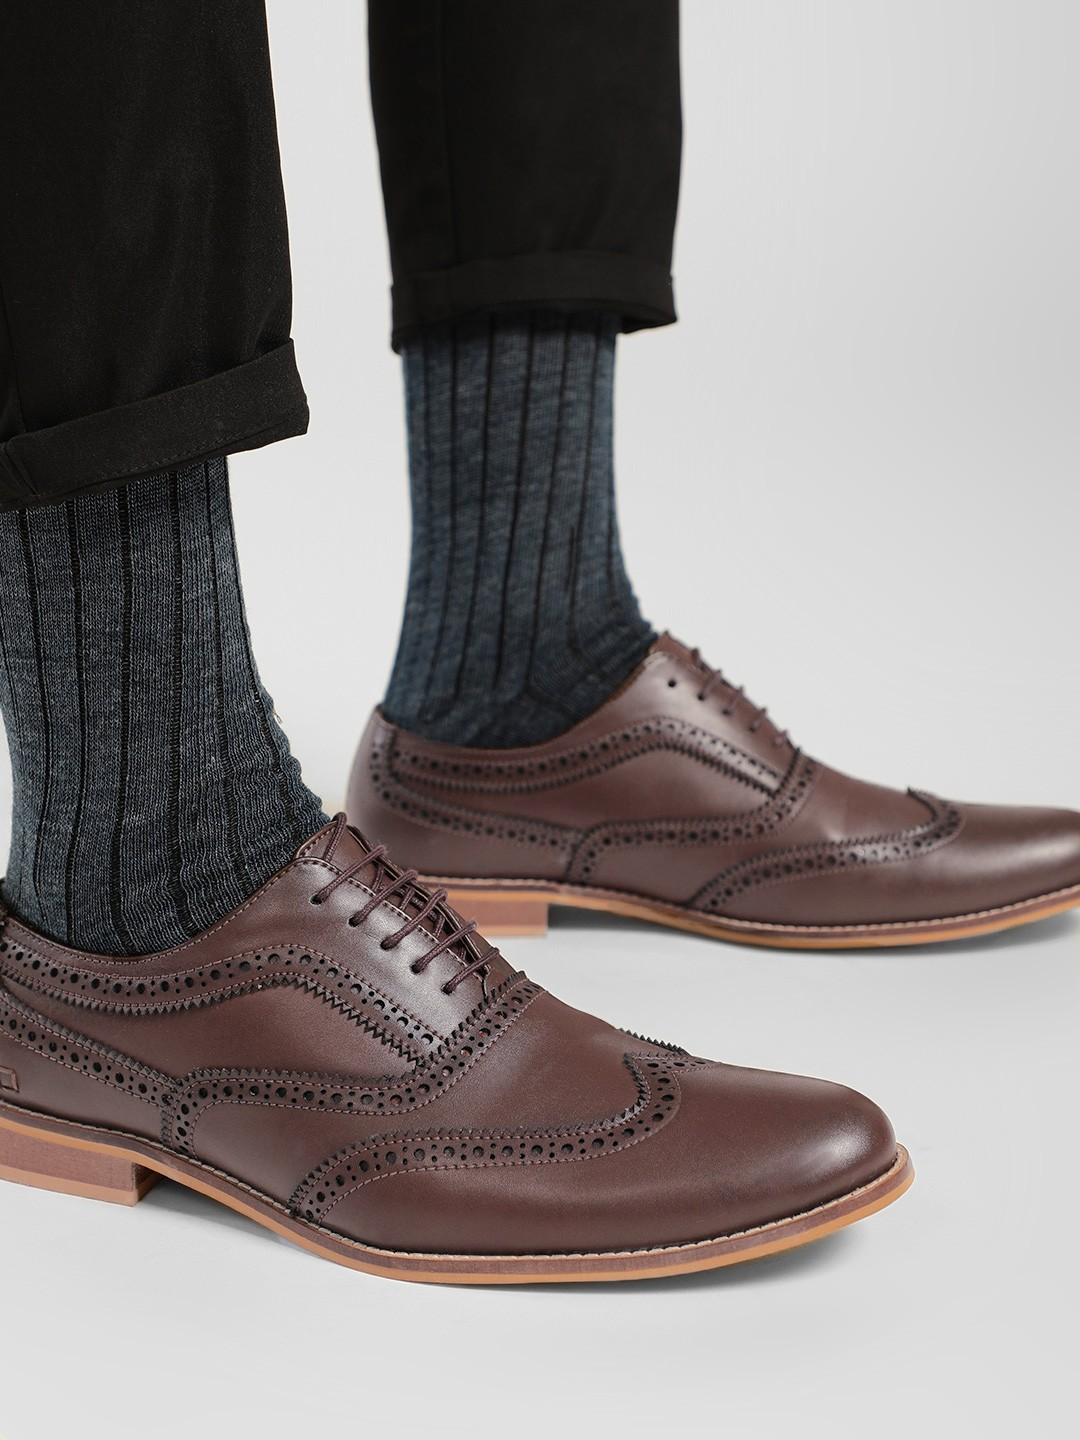 Griffin Brown Derby Toe Punches Formal Shoes 1